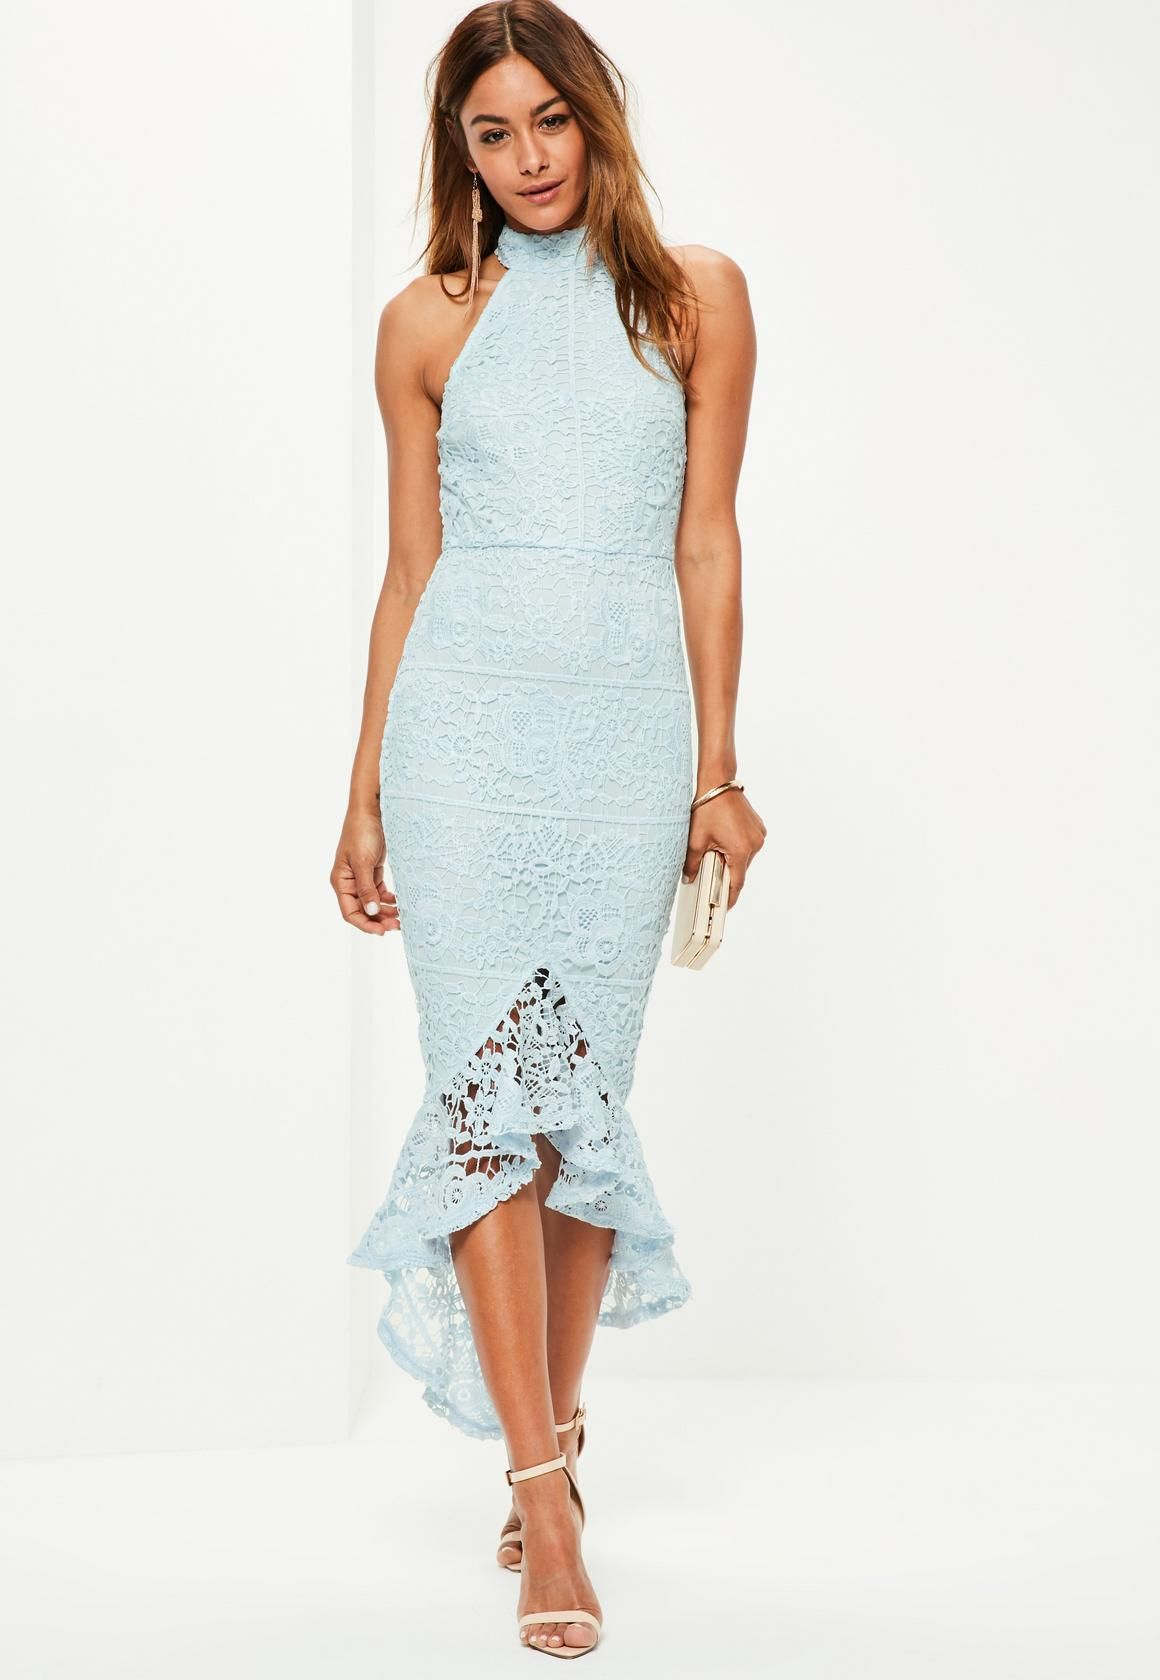 68048f5fab66 Missguided - Blue Lace High Neck Fishtail Midi Dress | Inspiration ...